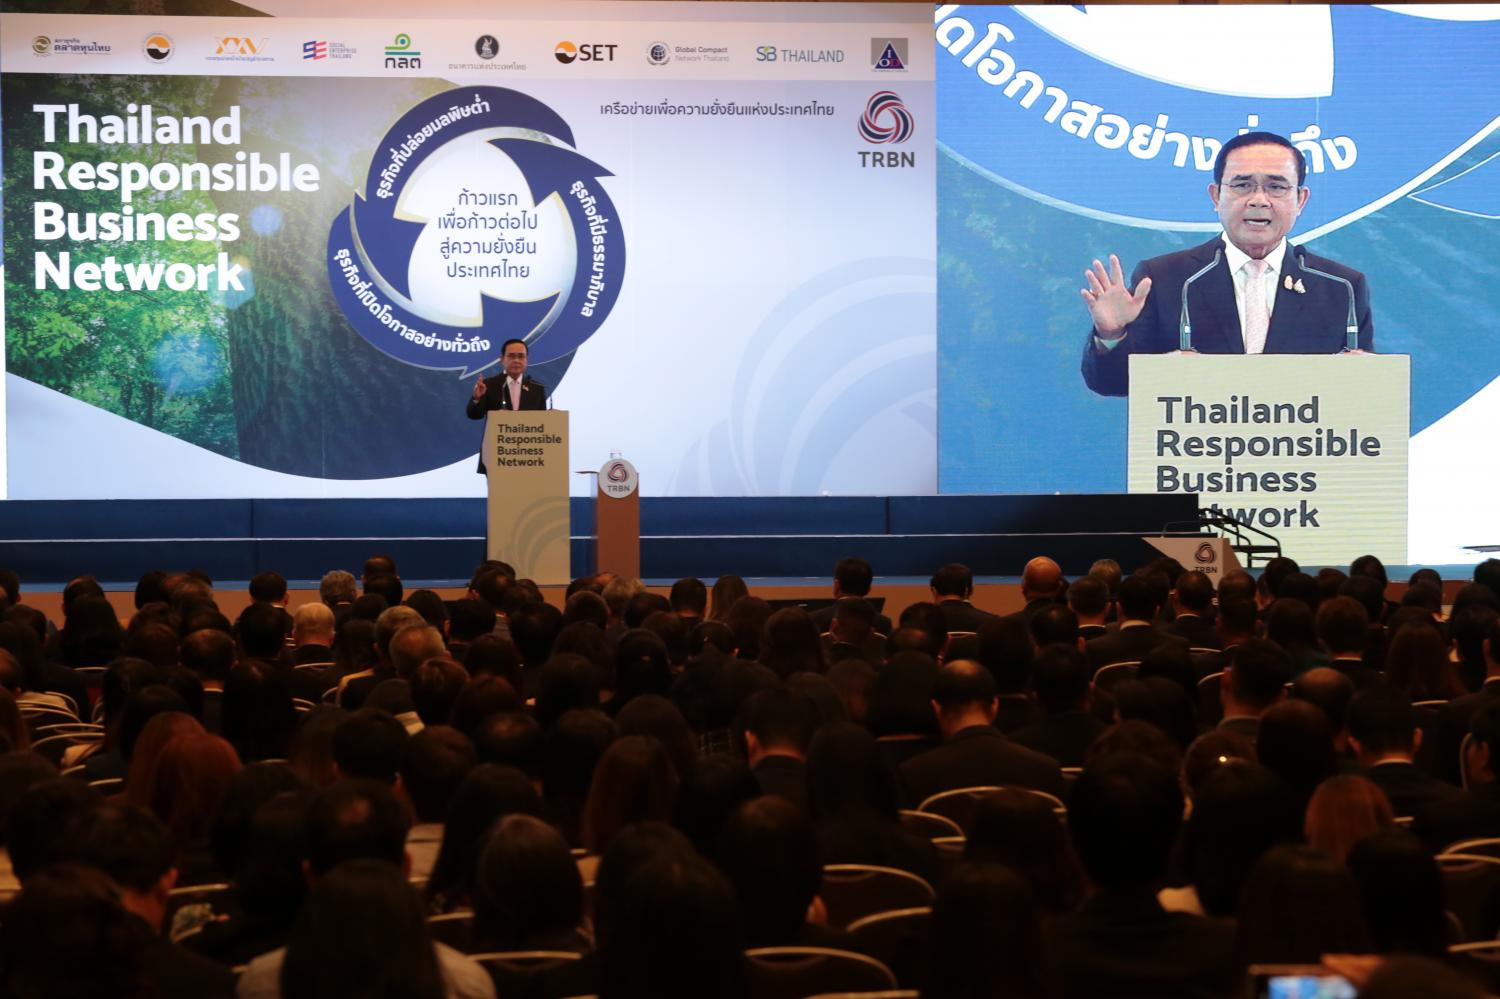 Gen Prayut addressing the audience during his keynote address at the TRBN forum. (Photo by Chanat Katanyu)